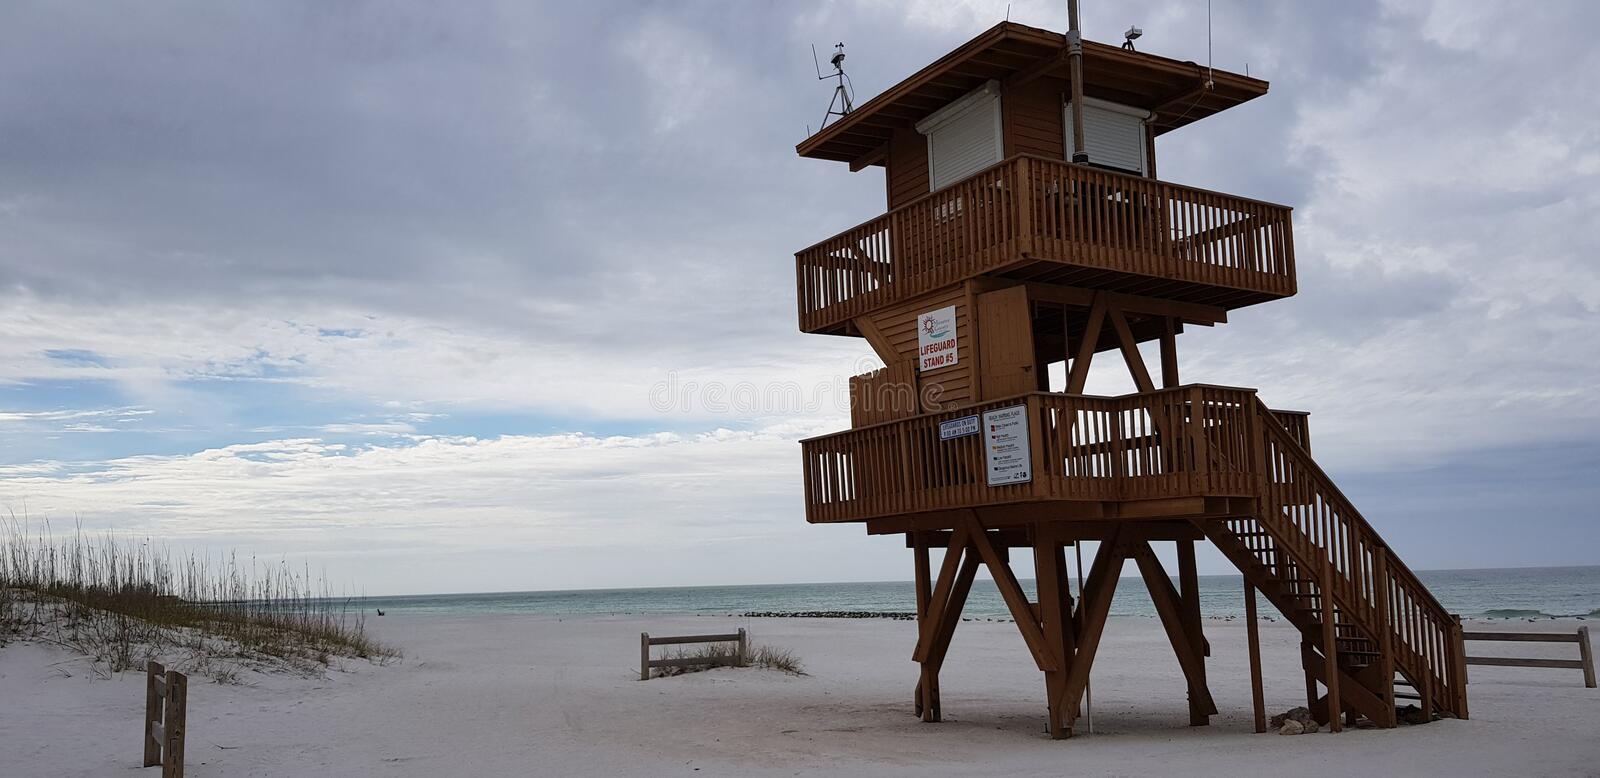 Coquina Beach Bradenton Florida Sunshine State stock images